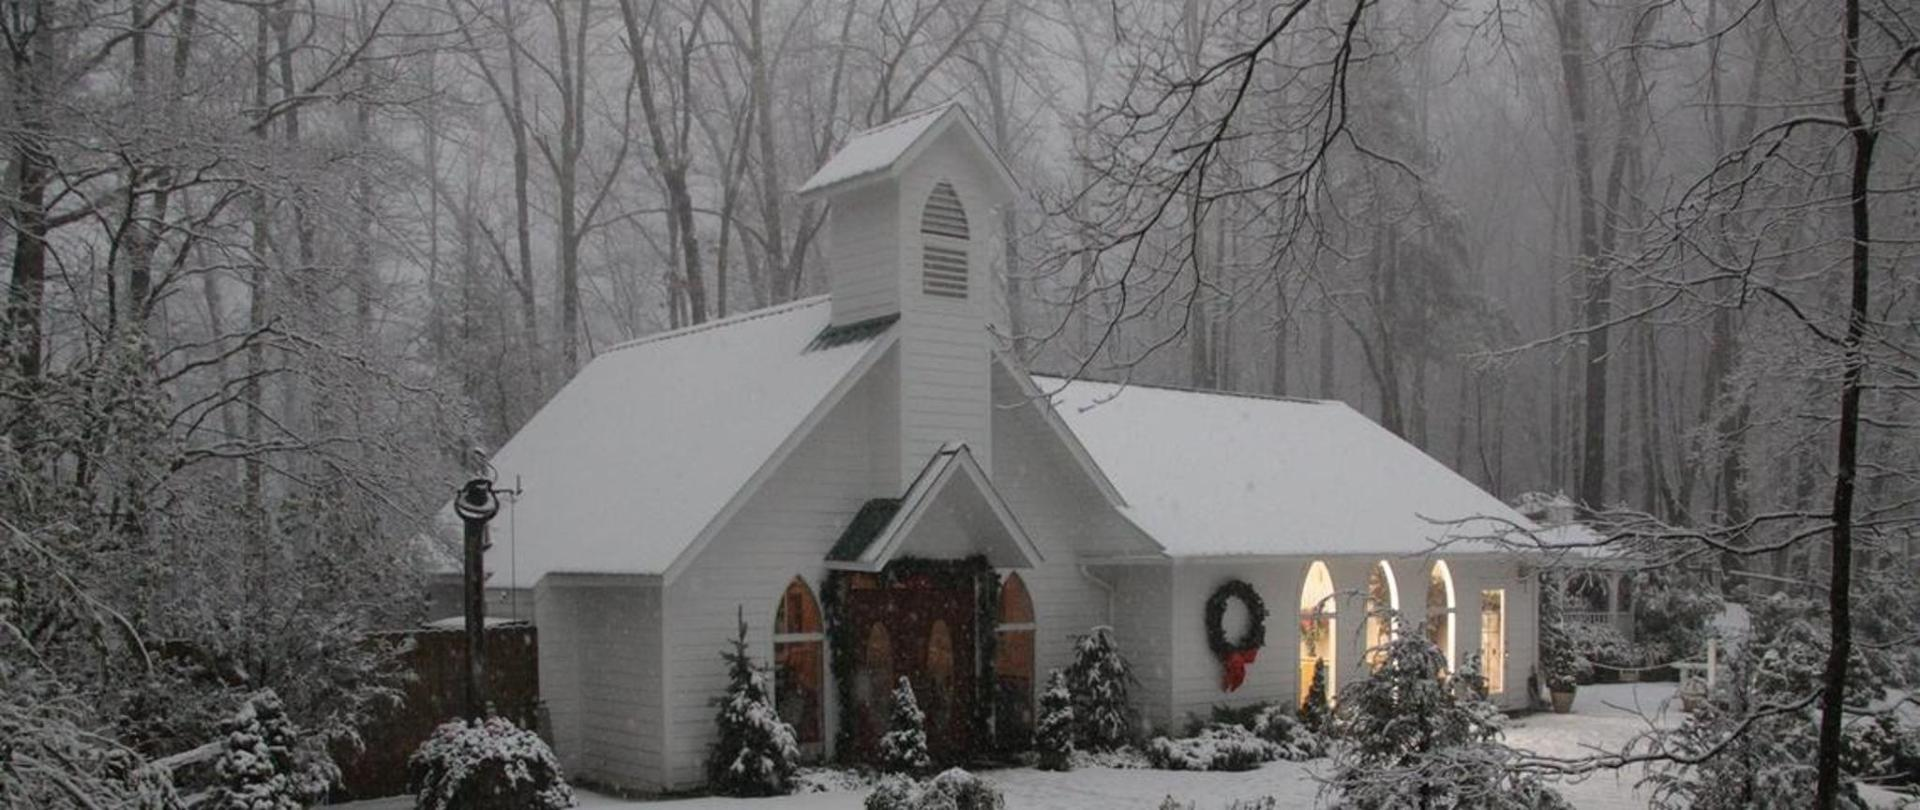 Winter Chapel In the Snow.jpg